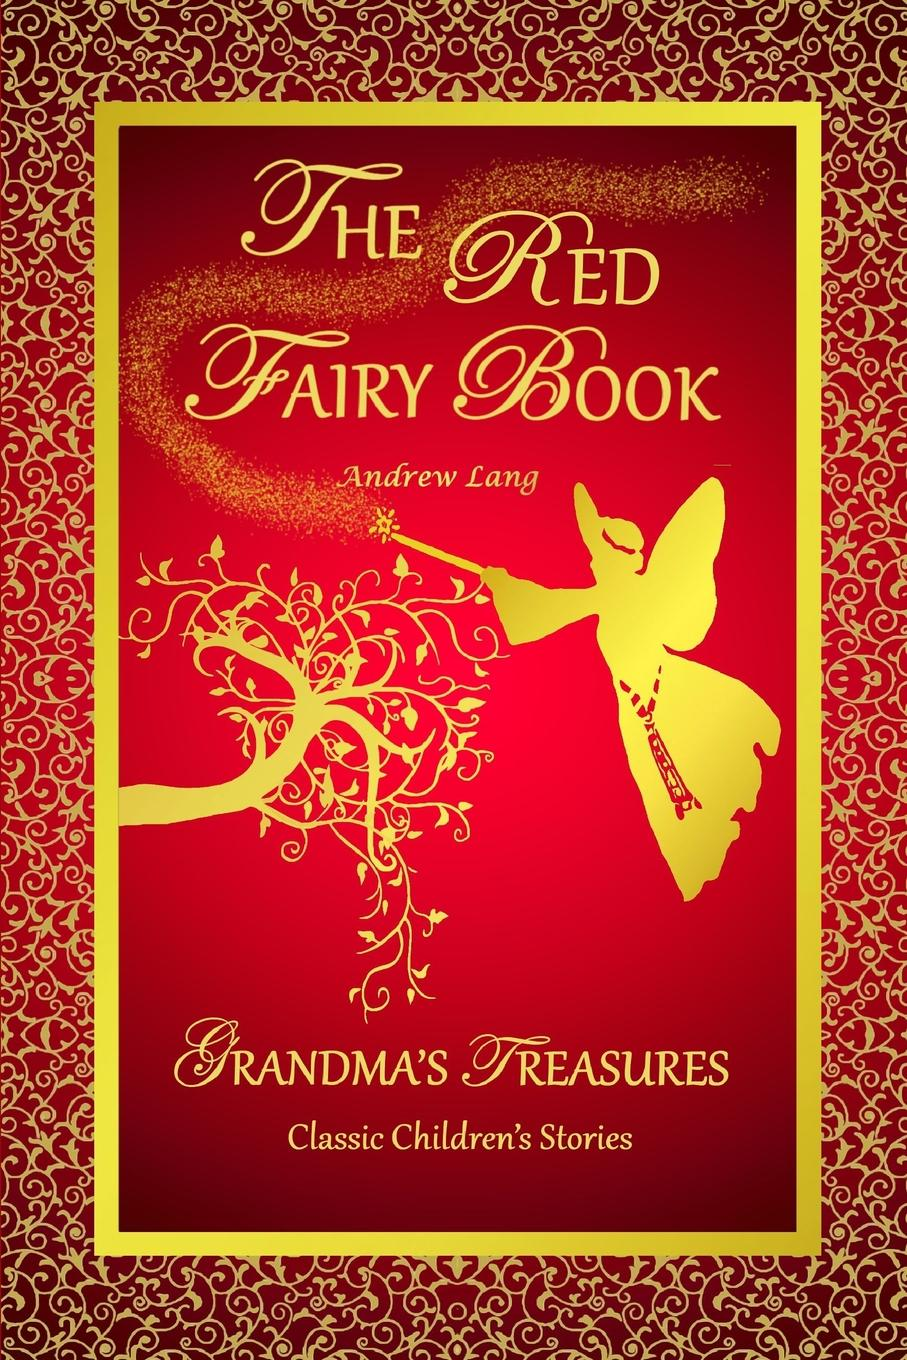 Фото - ANDREW LANG, GRANDMA'S TREASURES THE RED FAIRY BOOK - ANDREW LANG mummy fairy and me fairy in waiting